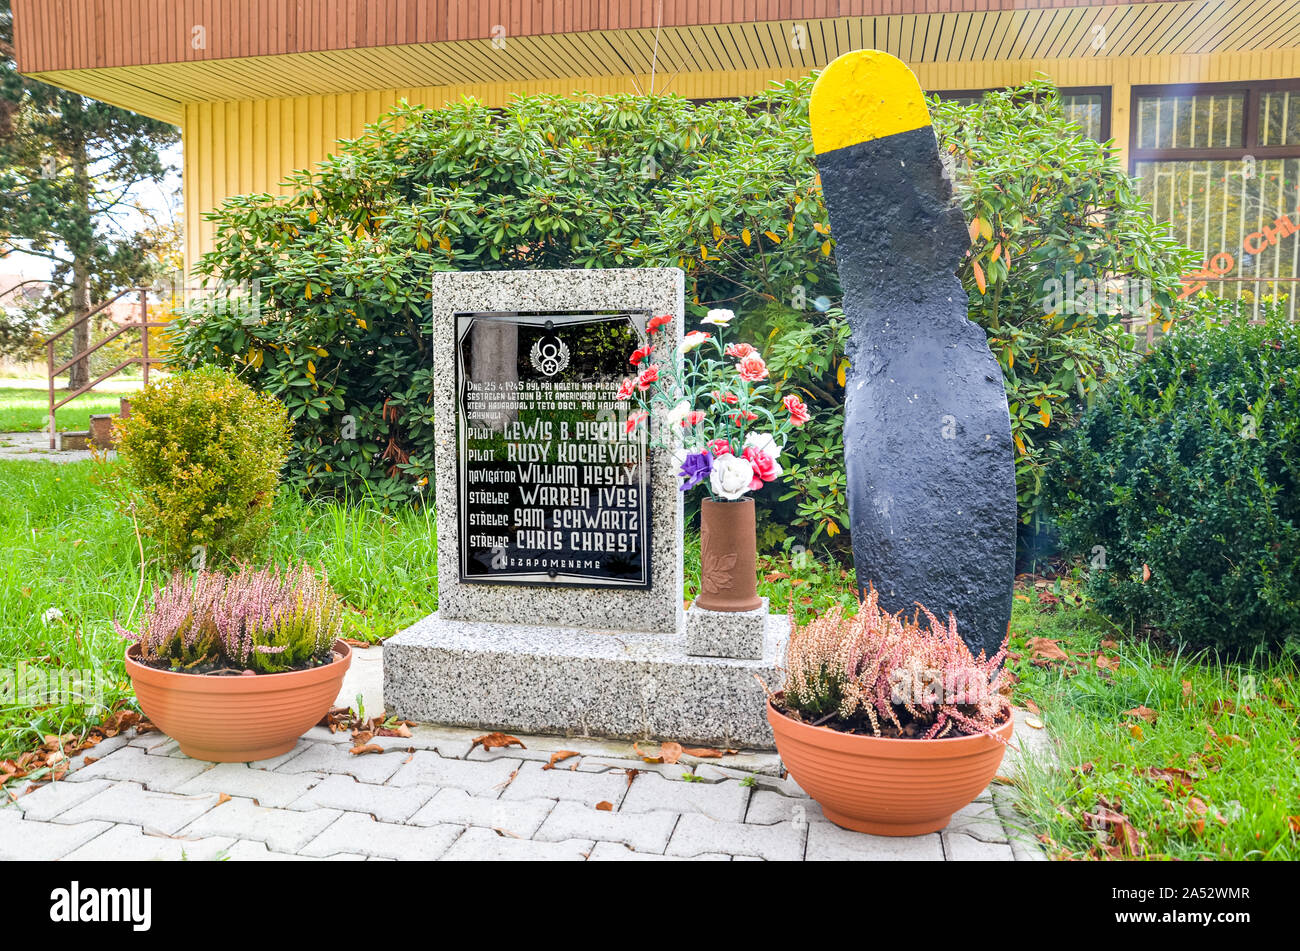 Ceminy, Czech Republic - Oct 17, 2019: Memorial dedicated to crew of bomber aircraft B-17G that was shot down during the Second World War. US Air Force. Memorial text in Czech and names of victims. Stock Photo